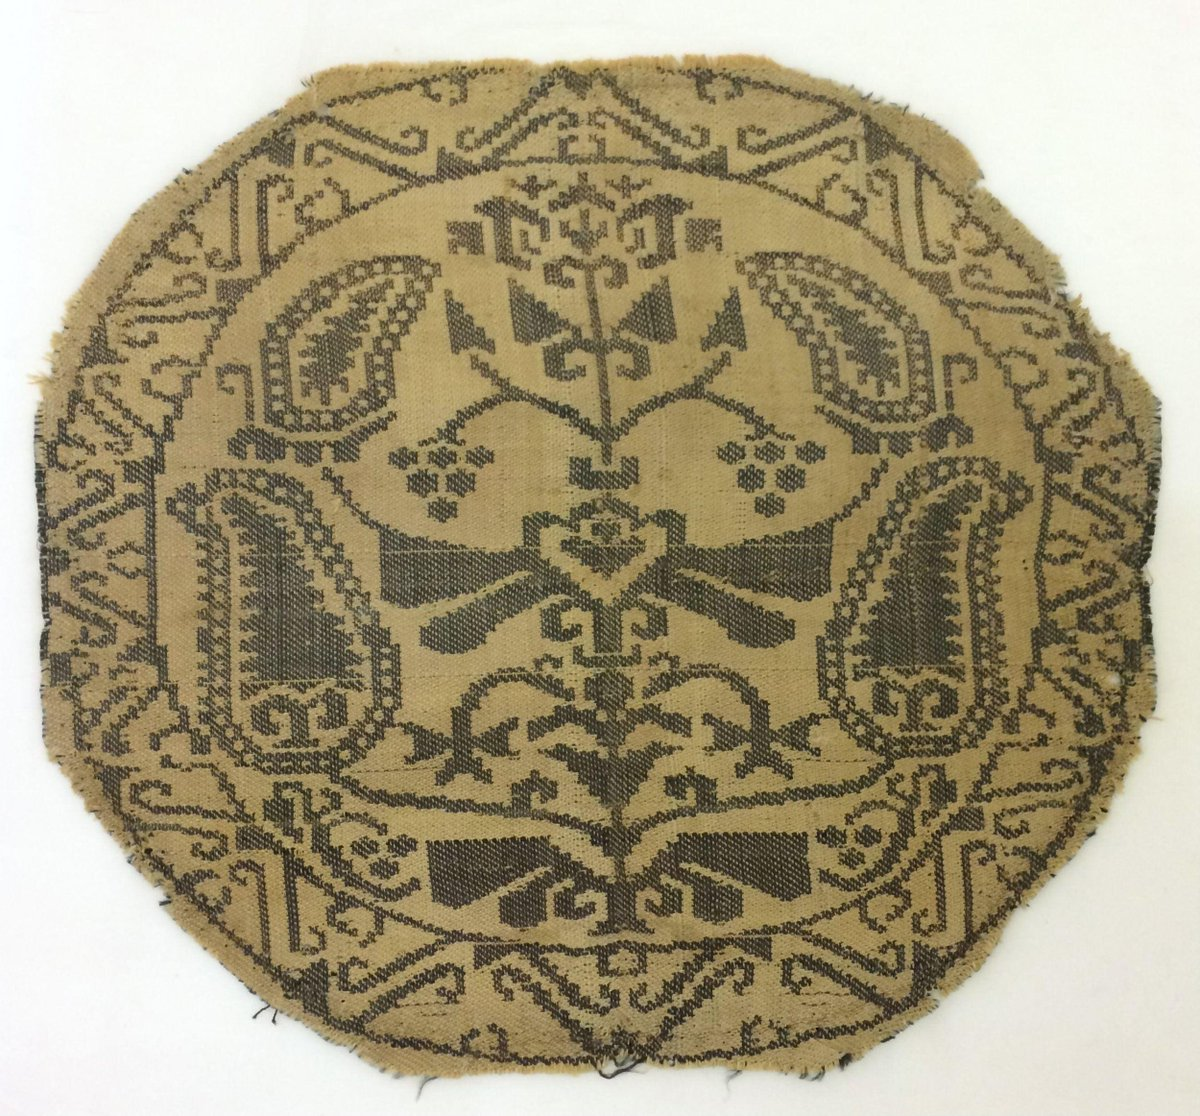 Samite (twill woven silk) was thought to originate from Persia under Sassanian rule (AD224-651). A round, gold piece of fabric woven with vines and boteh motifs. (c)Victoria and Albert Museum, London